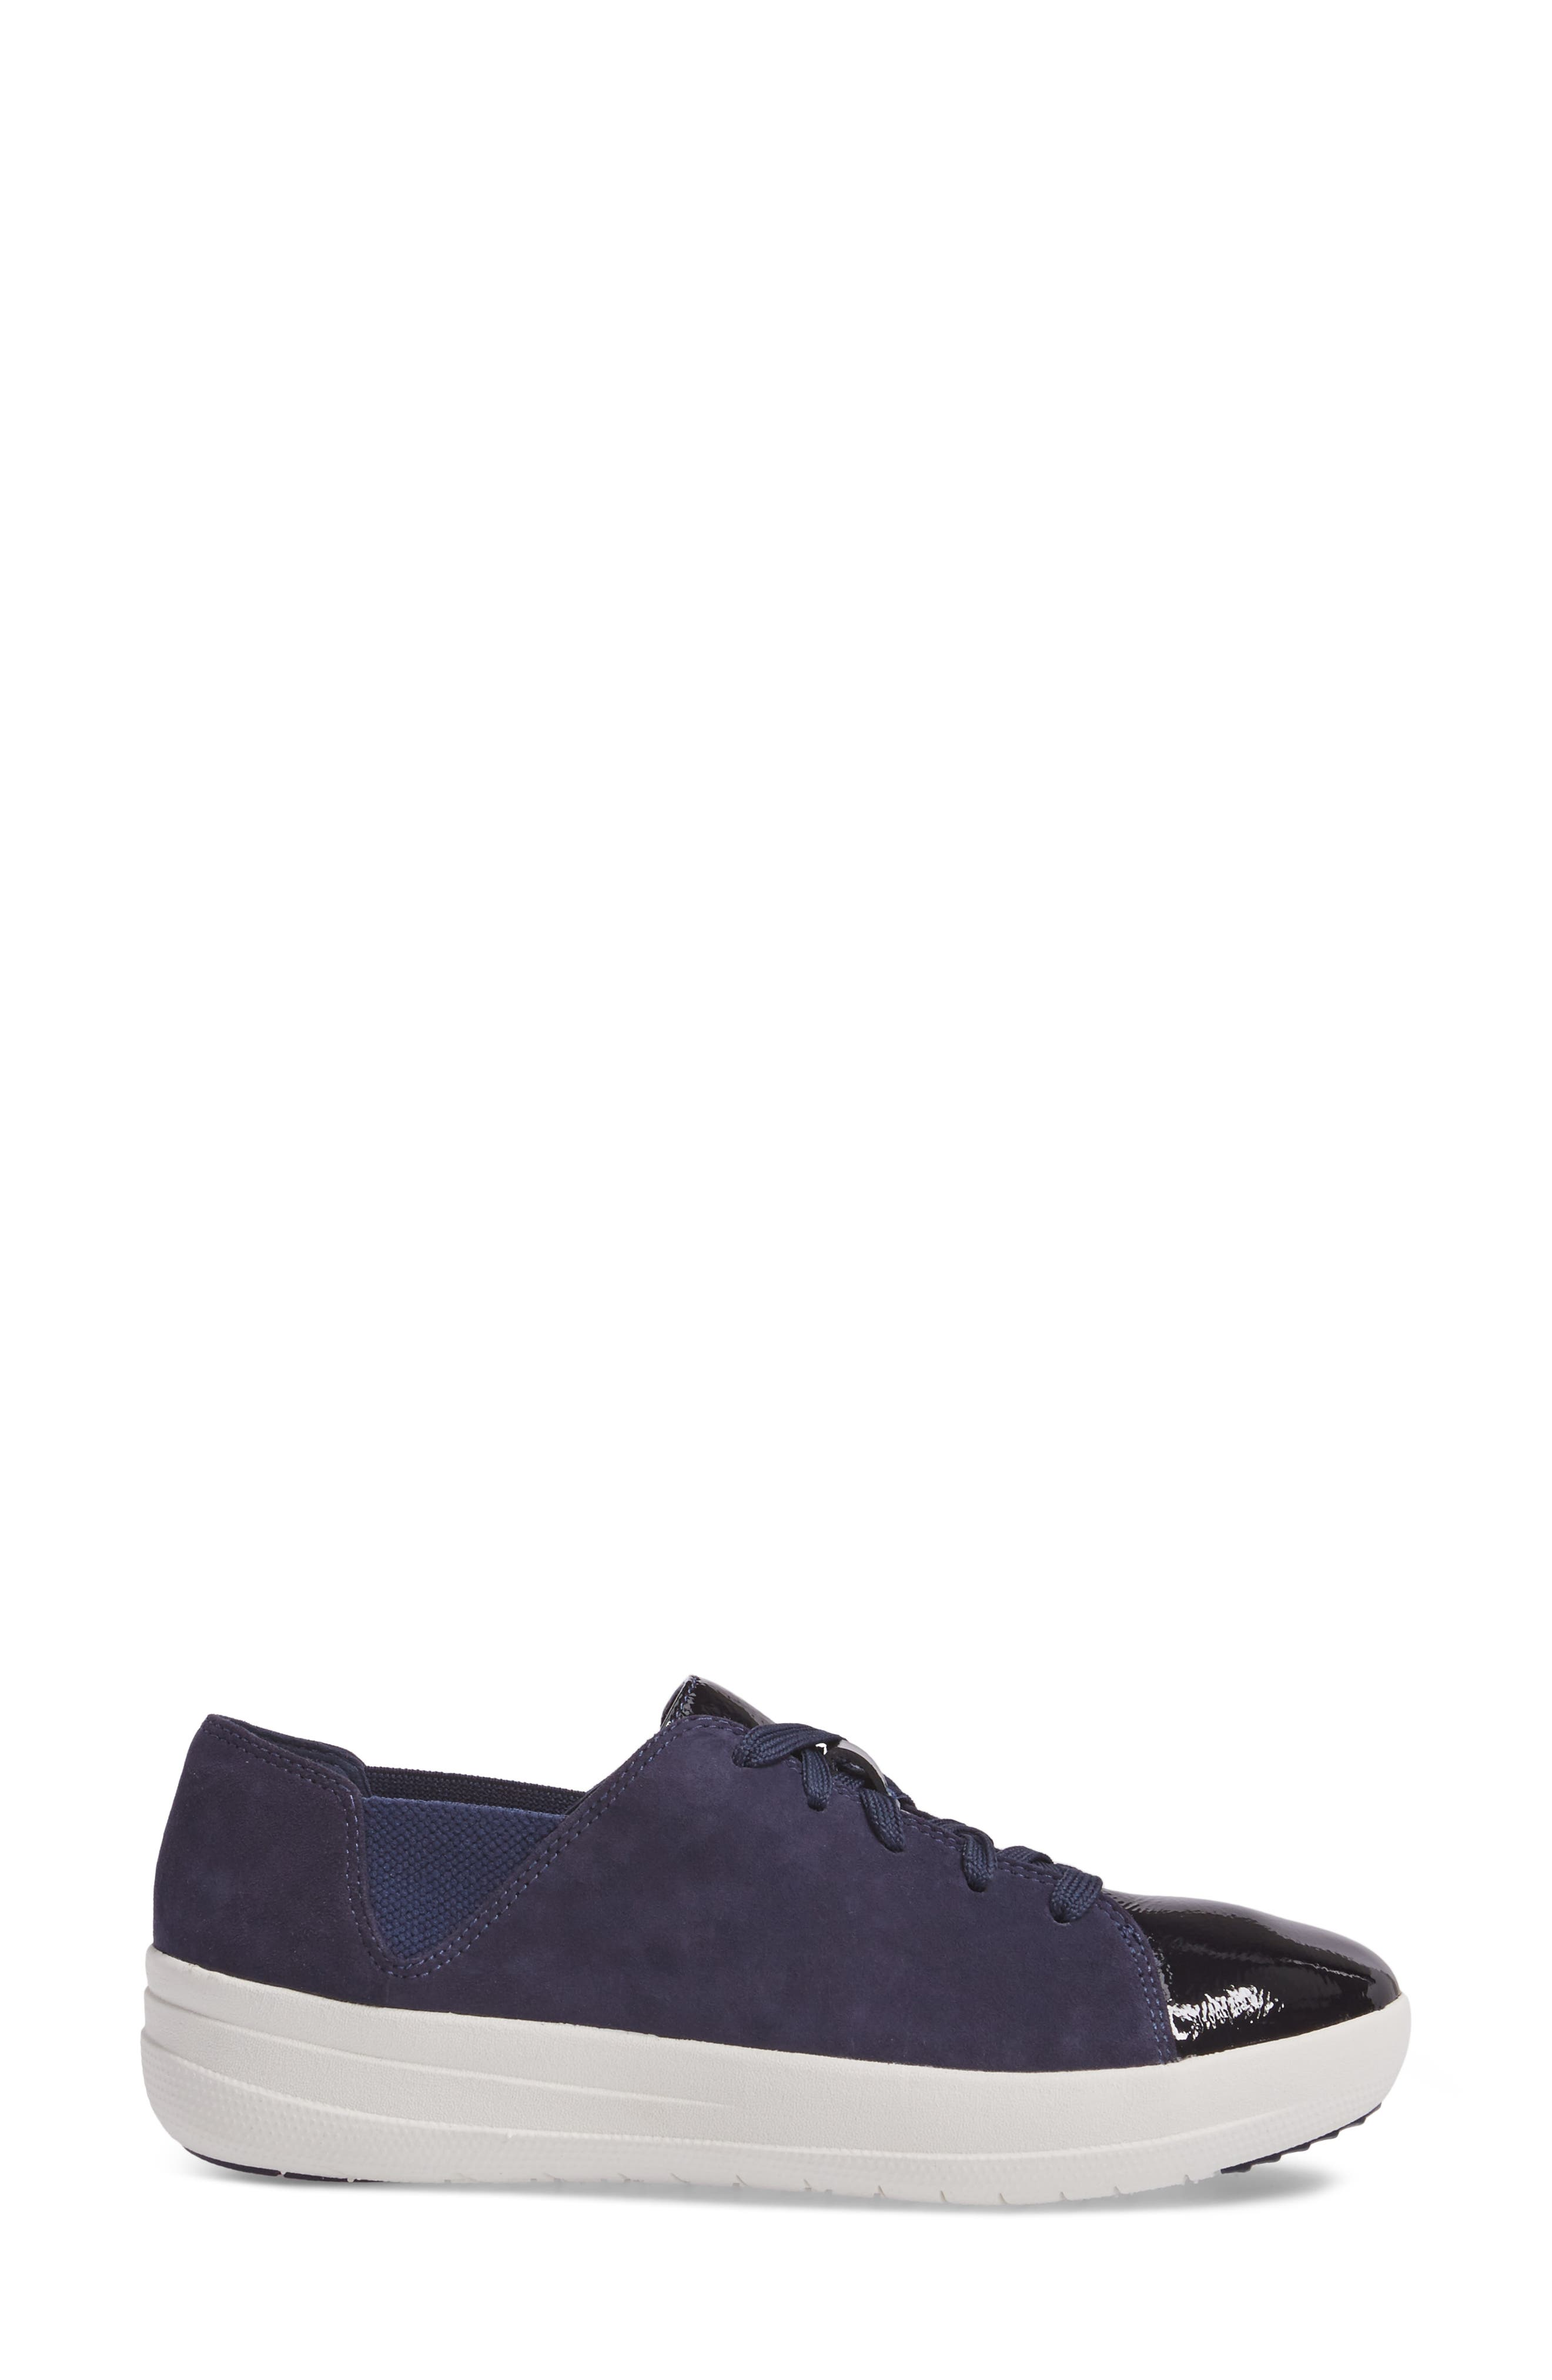 F-Sporty Sneaker,                             Alternate thumbnail 3, color,                             Midnight Navy Mix